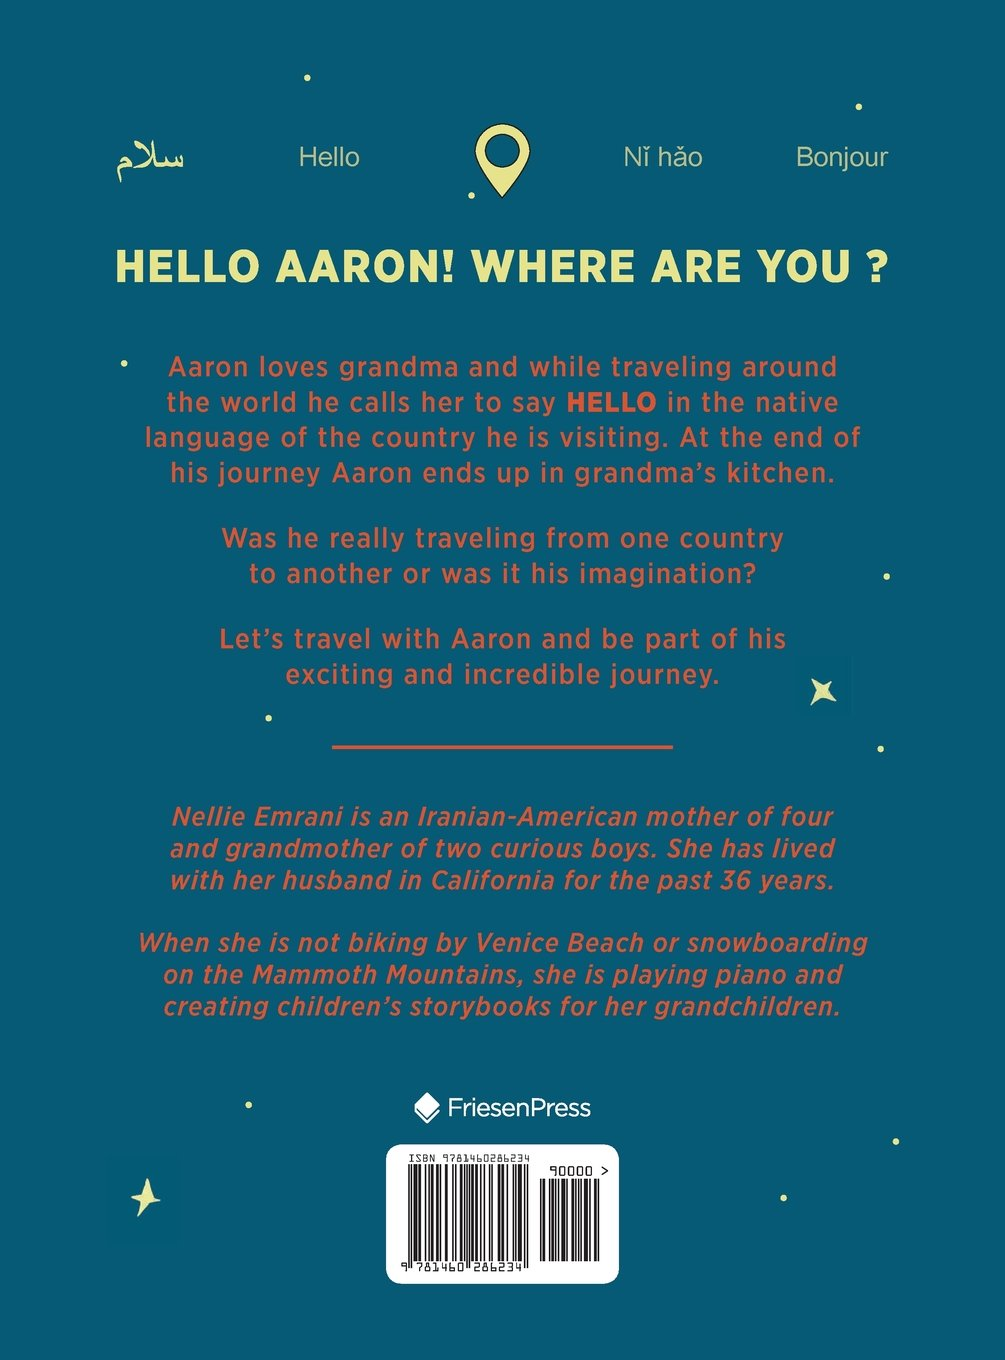 Hello Aaron! Where are you?